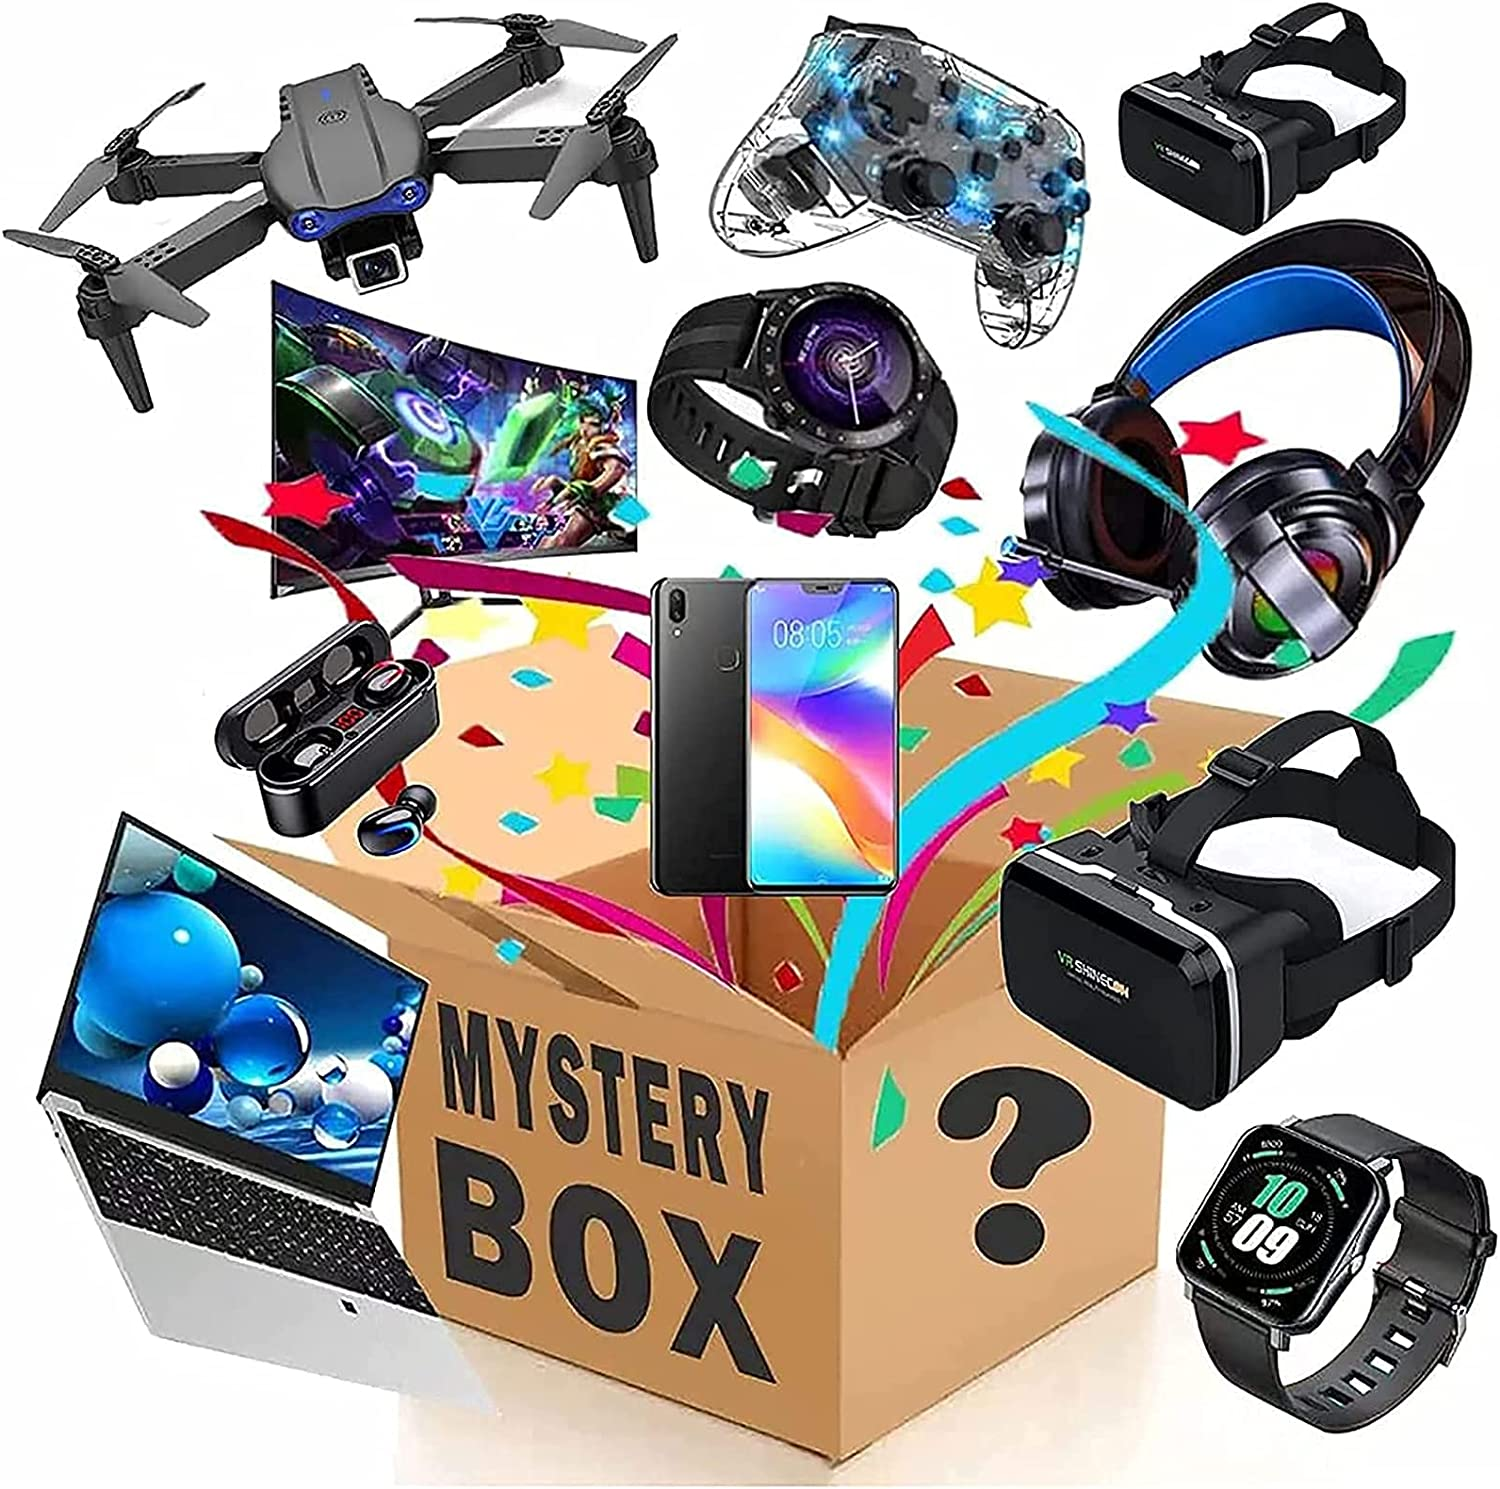 Mystery Box Electronic Lucky Inventory cleanup selling sale Max 84% OFF Coste Super Boxes Blind